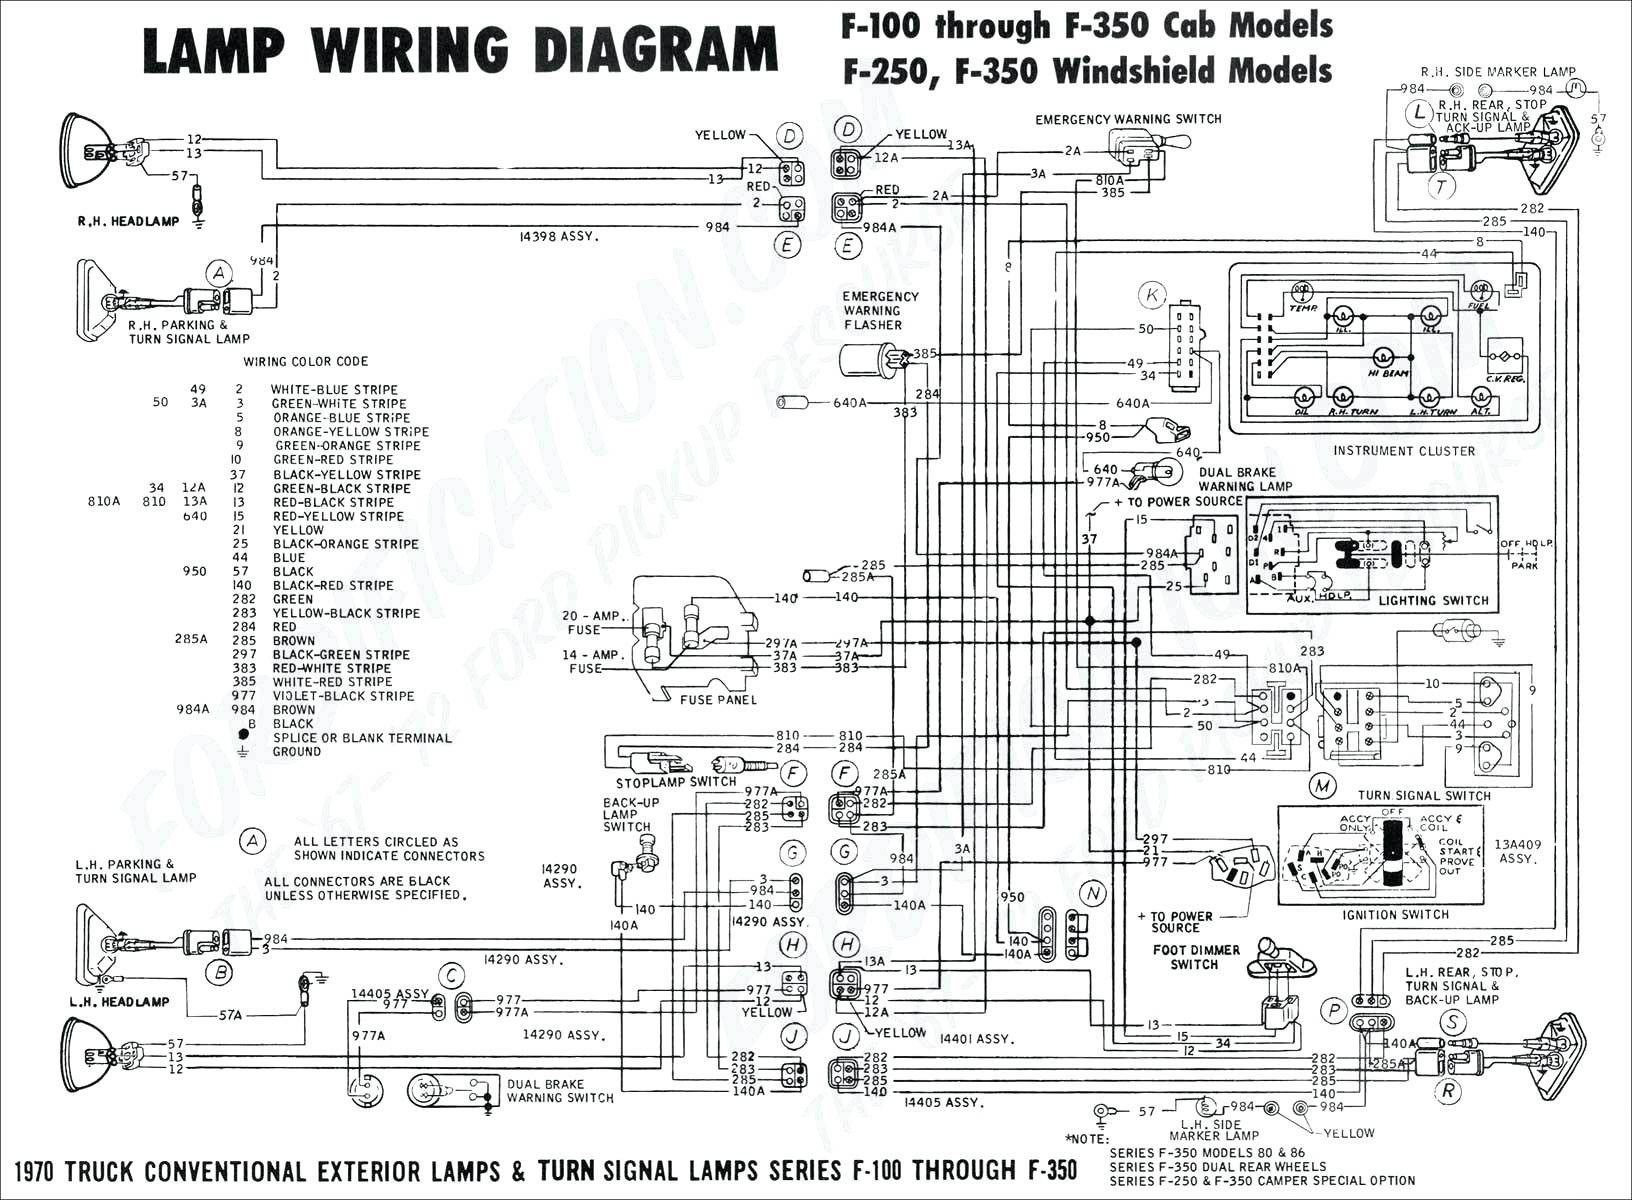 Chevy S10 Wiring Diagram Chevy S10 Wiring